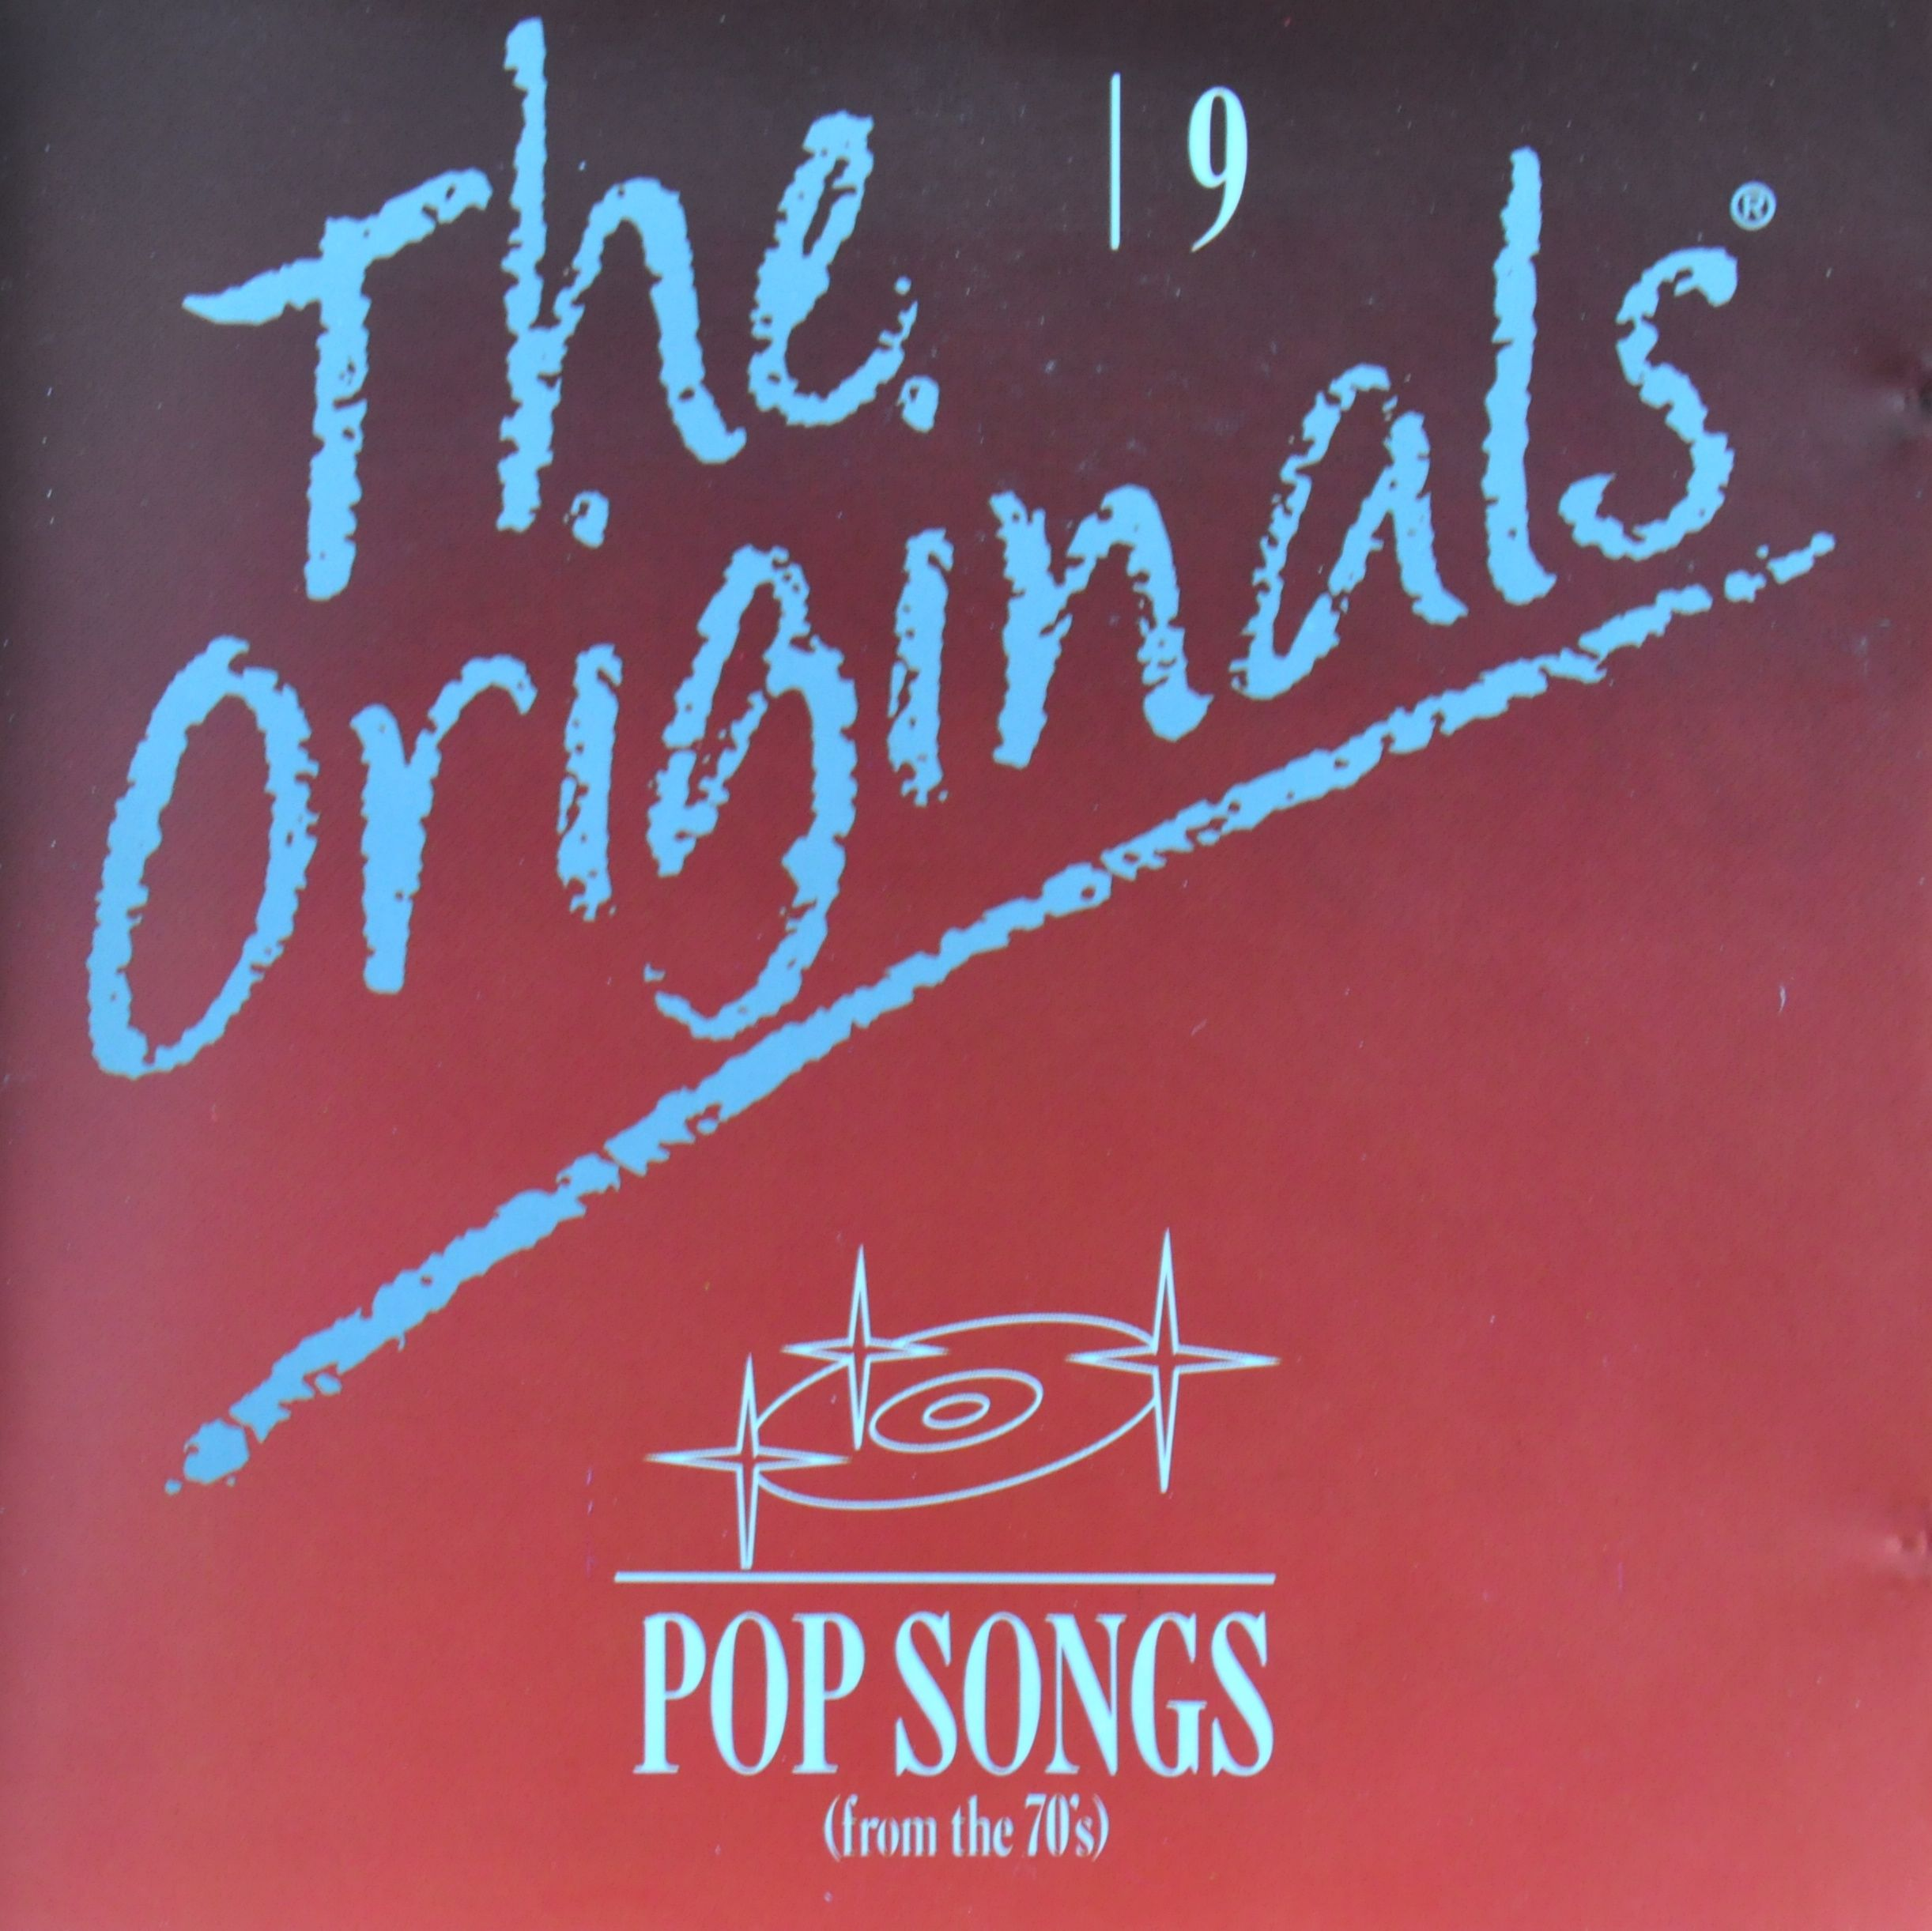 jaquettes2/The-Originals_09_Pop-Songs-from-the-70s.jpg